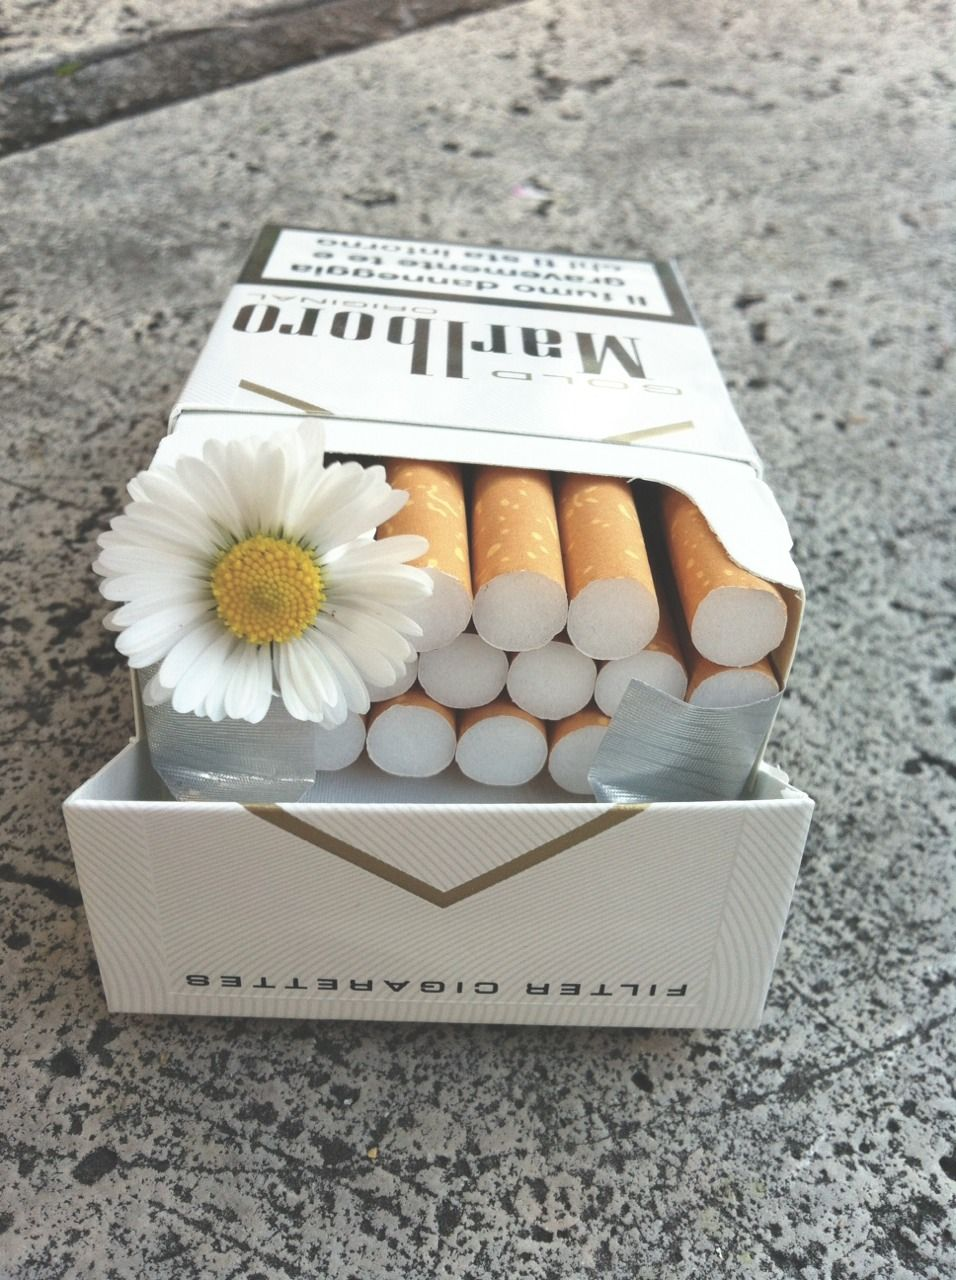 I love how it has Augustus Waters cigarettes and Alaska Young's white daisy